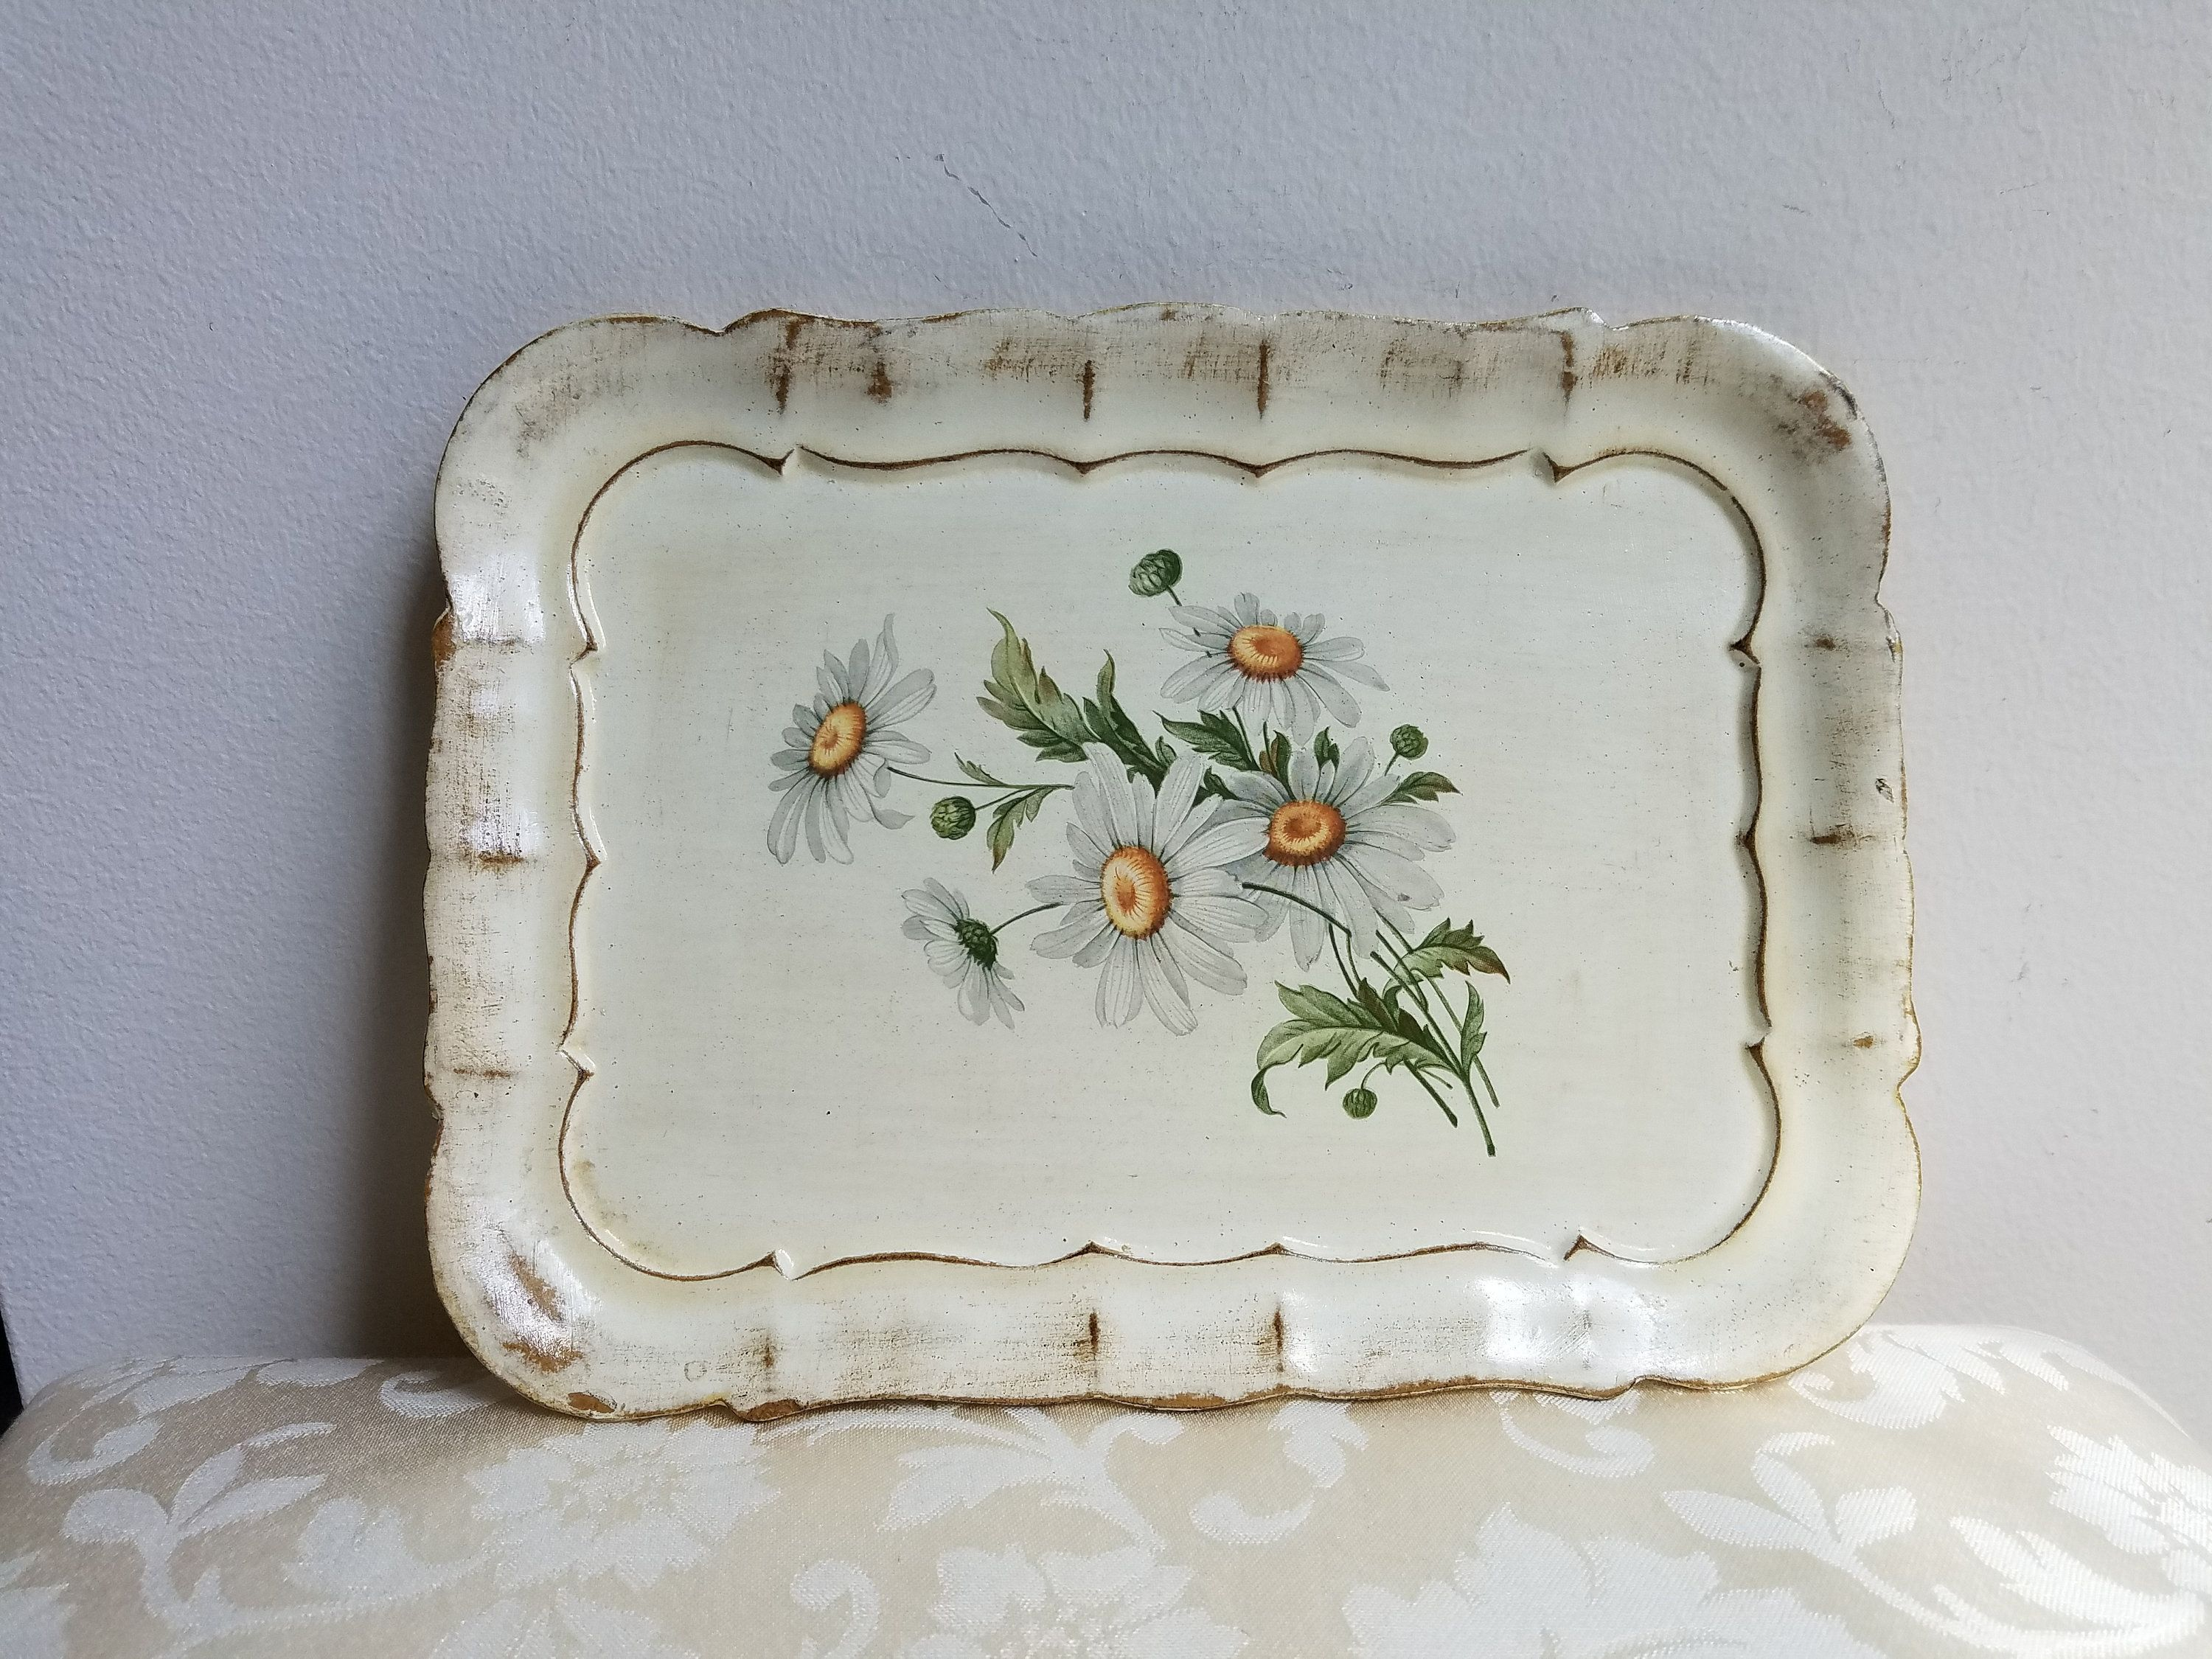 Vintage Florentine Botanical Wood Tray White Daisies Flowers Made In Italy 8 X 10 Cream Off White Scalloped Edge By Vintageno Wood Tray Vintage Shops Handmade